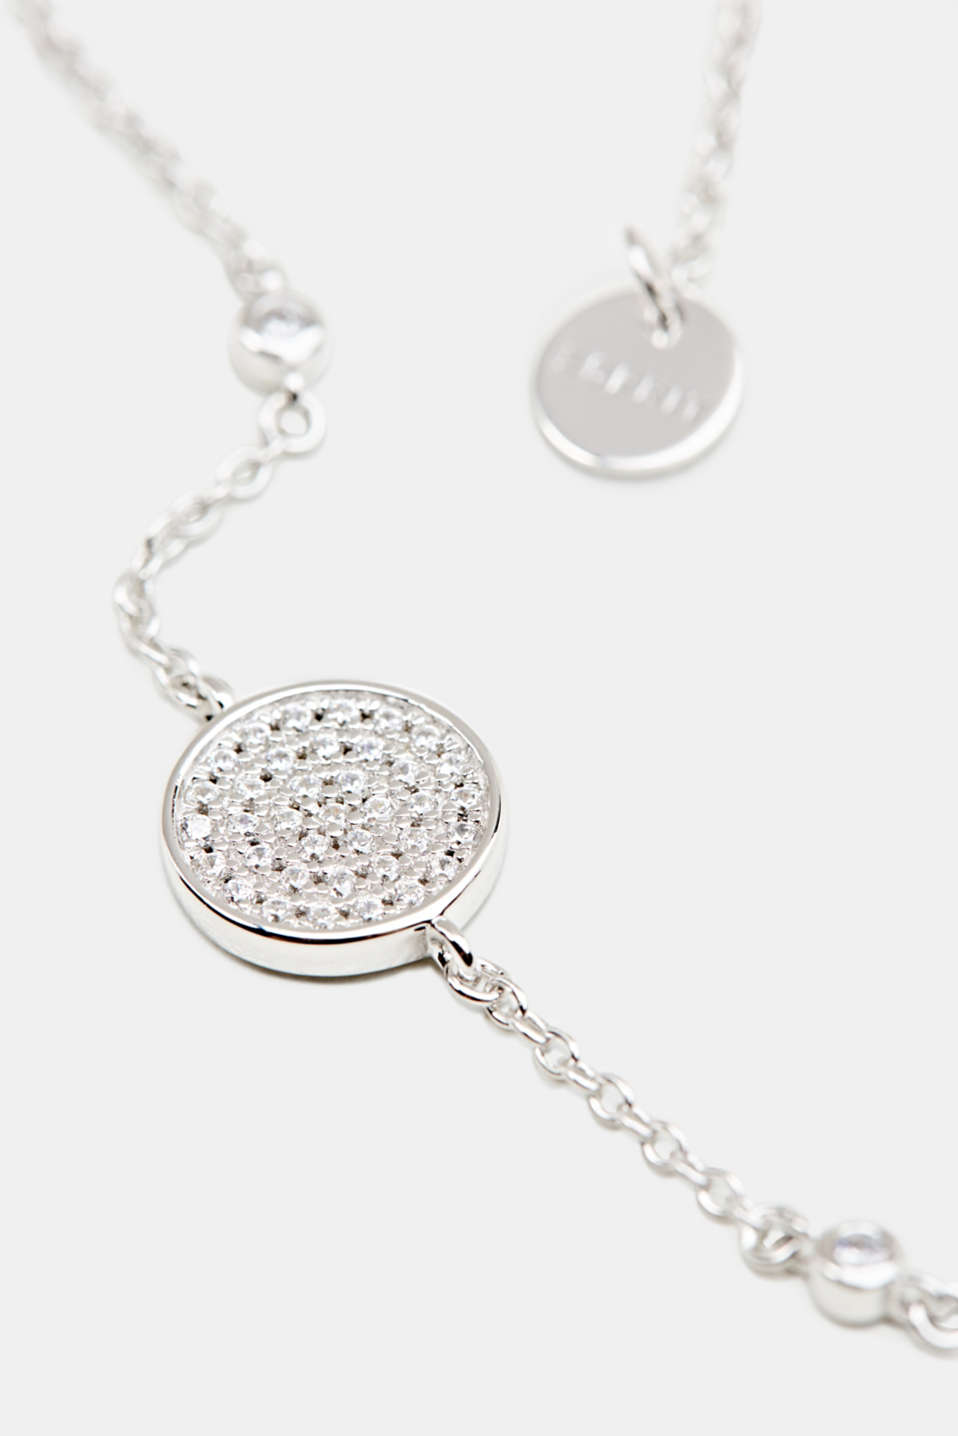 Bracelet with zirconia charm, sterling silver, LCSILVER, detail image number 1